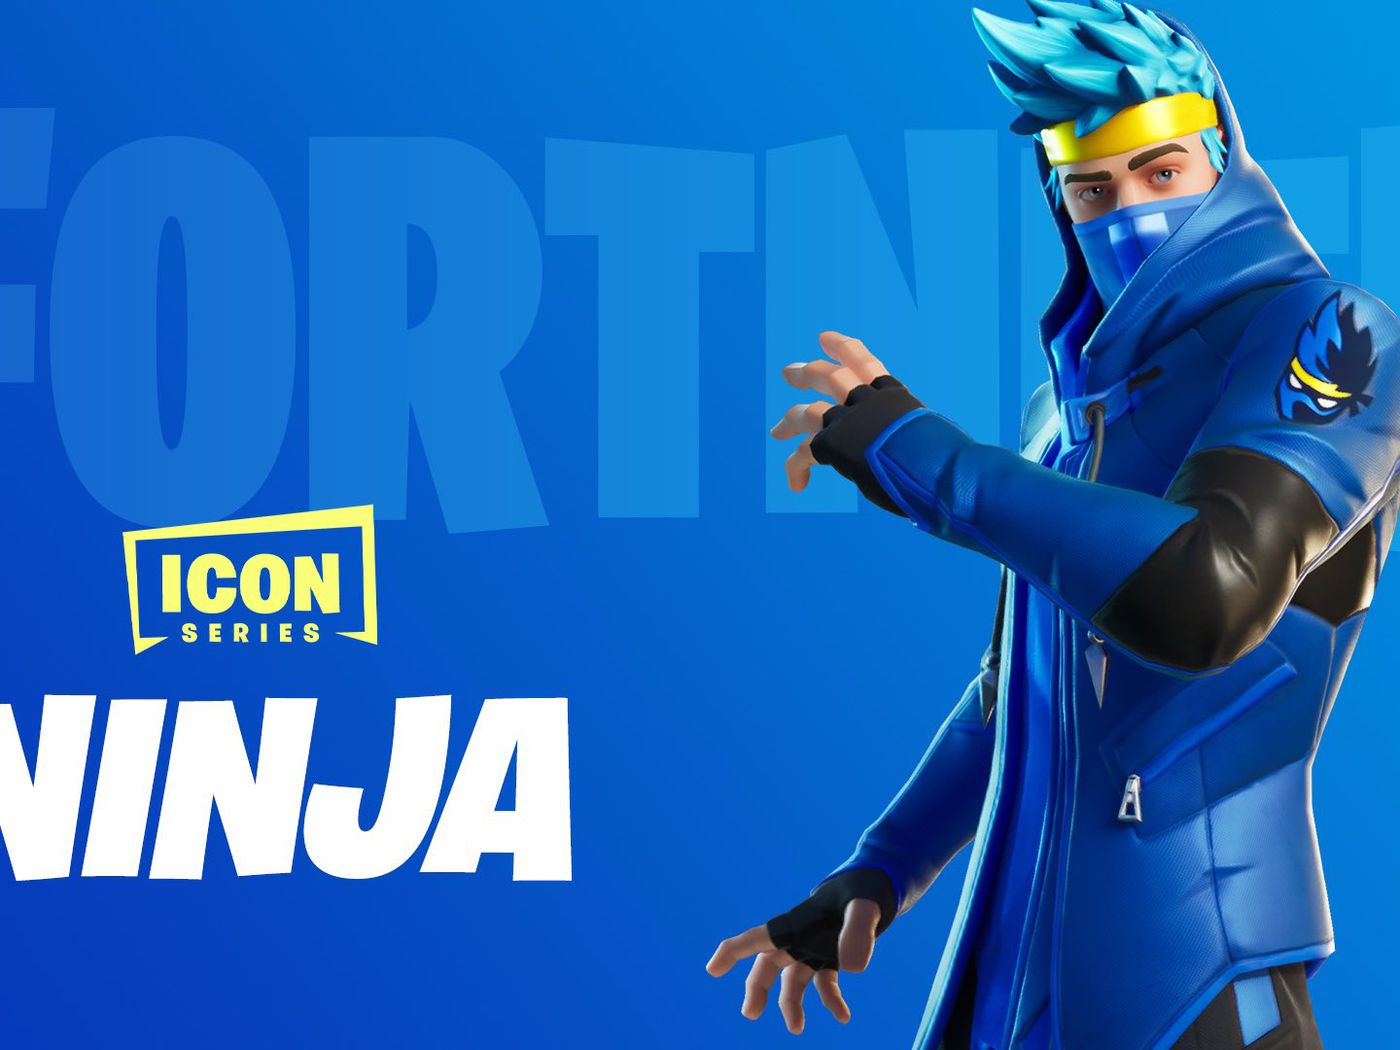 Fortnite S New Ninja Skin Is Another Step Toward Creating Its Ultimate Virtual World The Verge